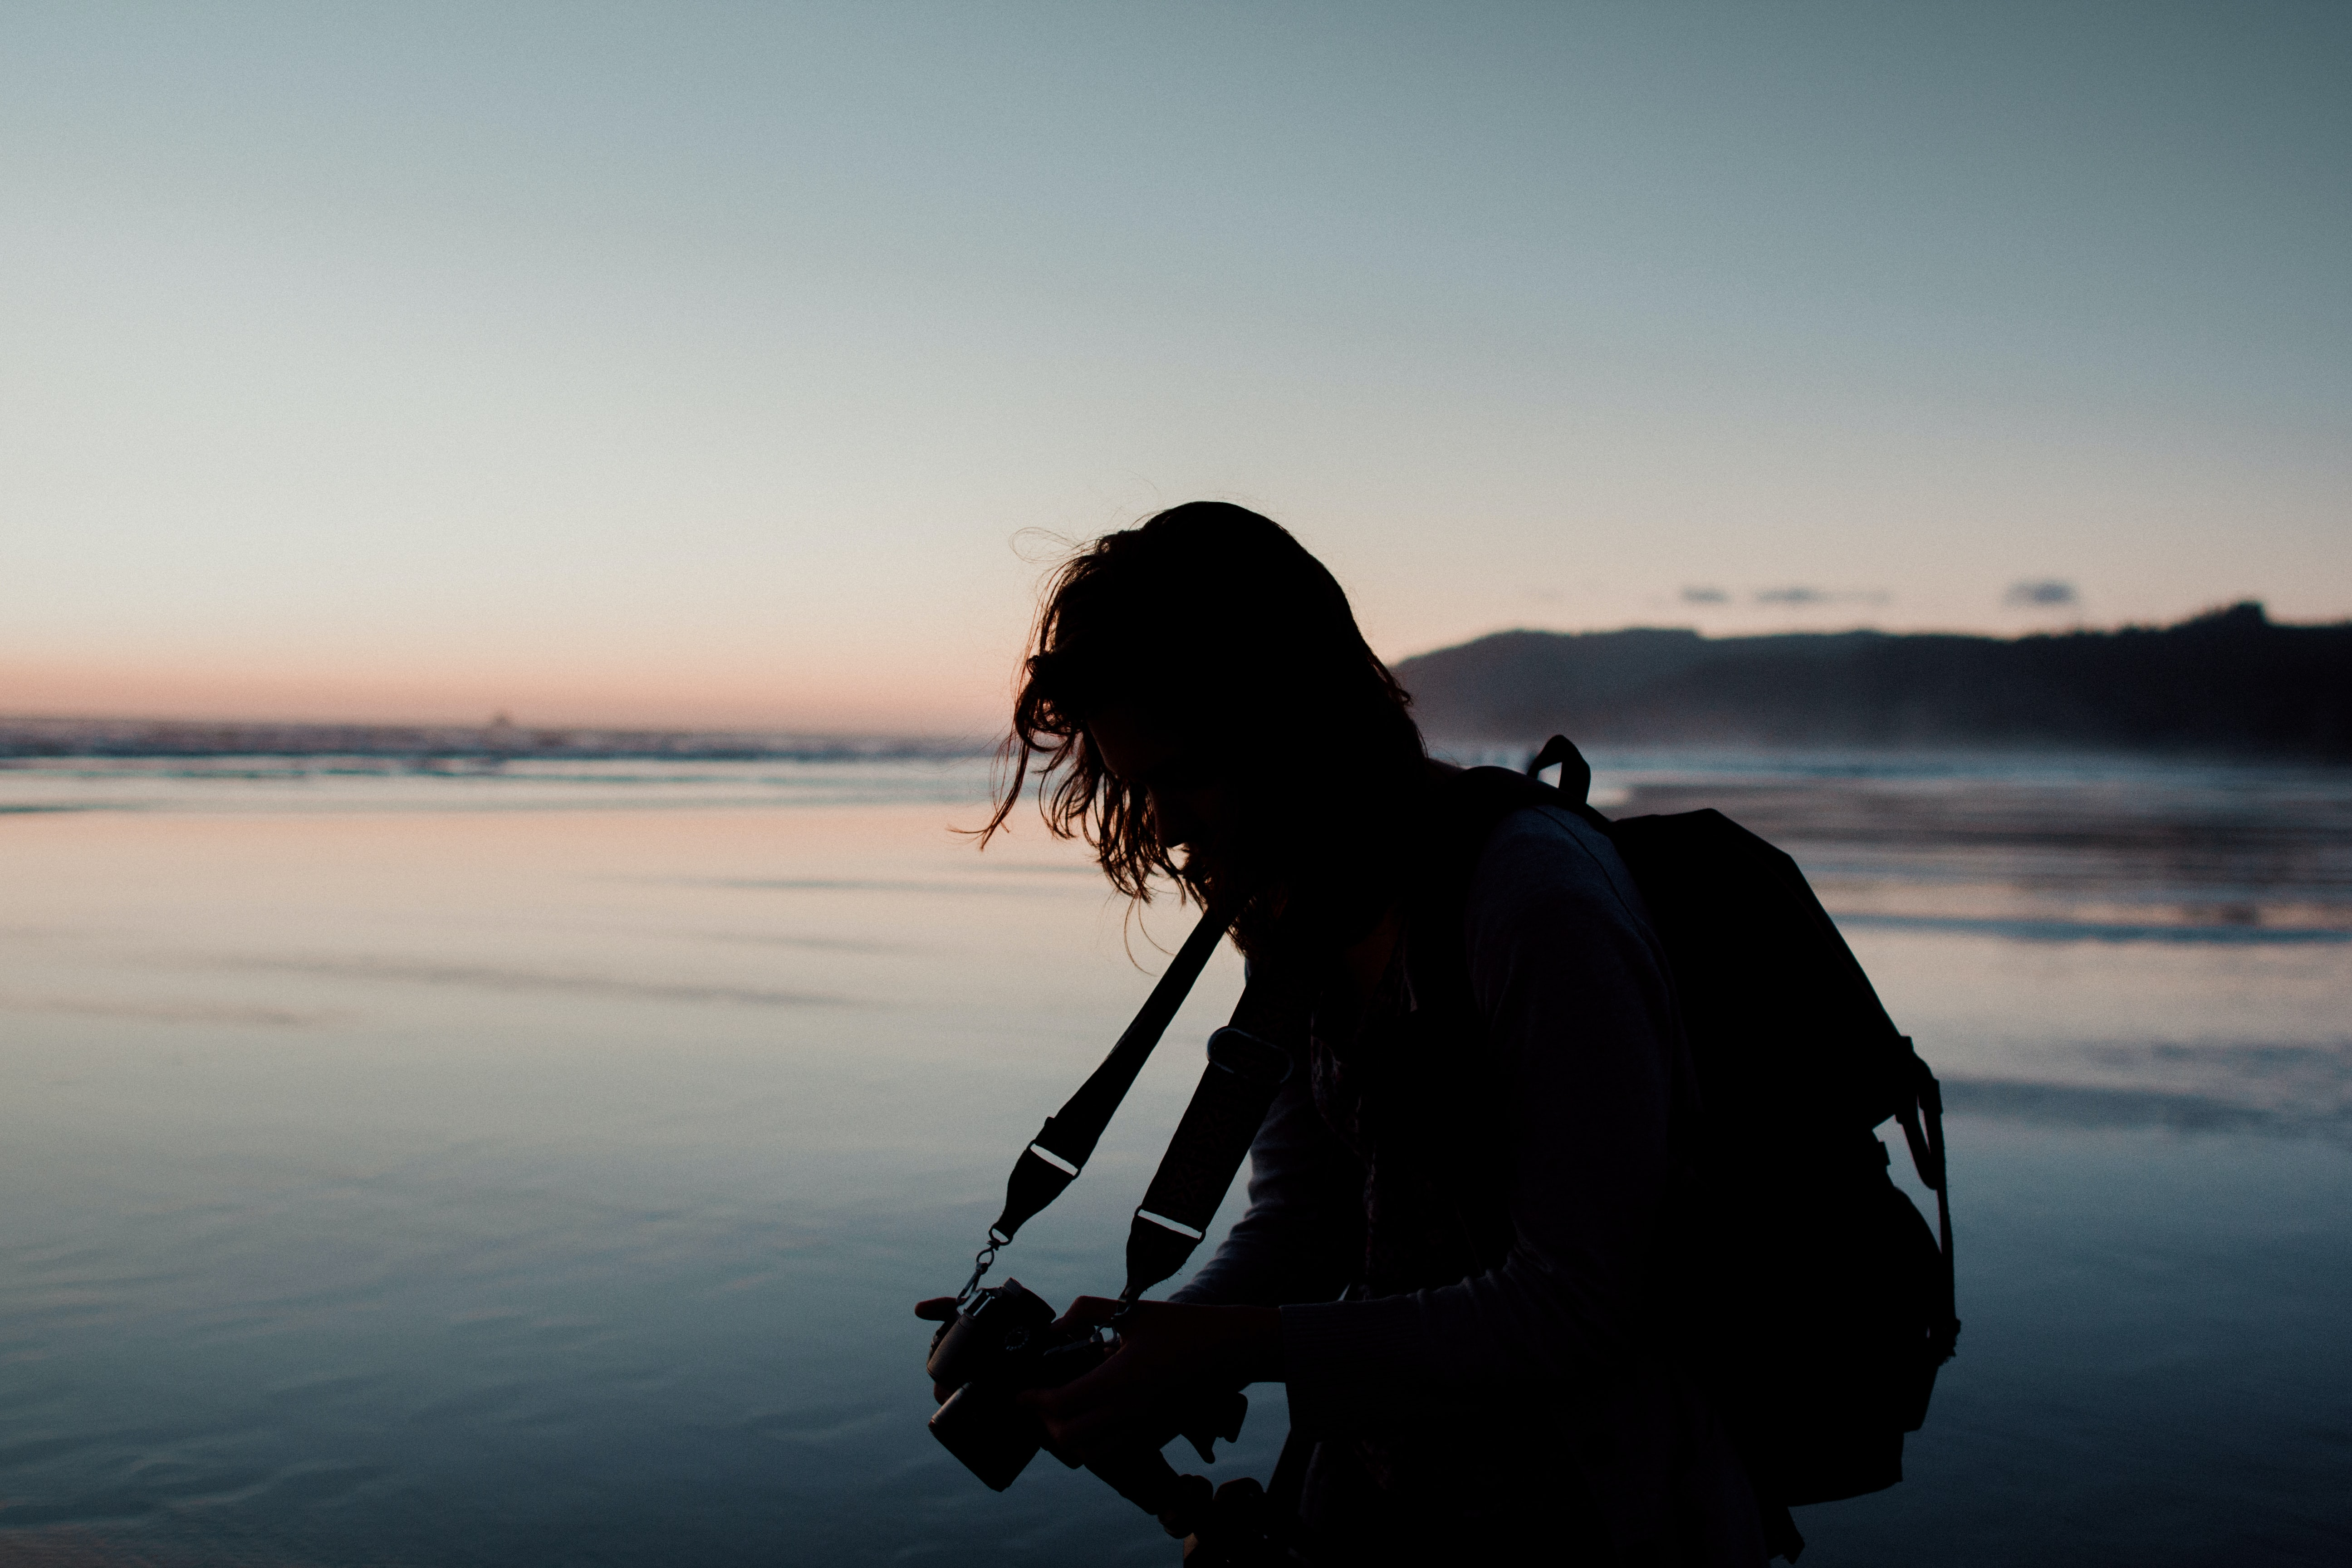 silhouette photo of man holding a camera beside body of water